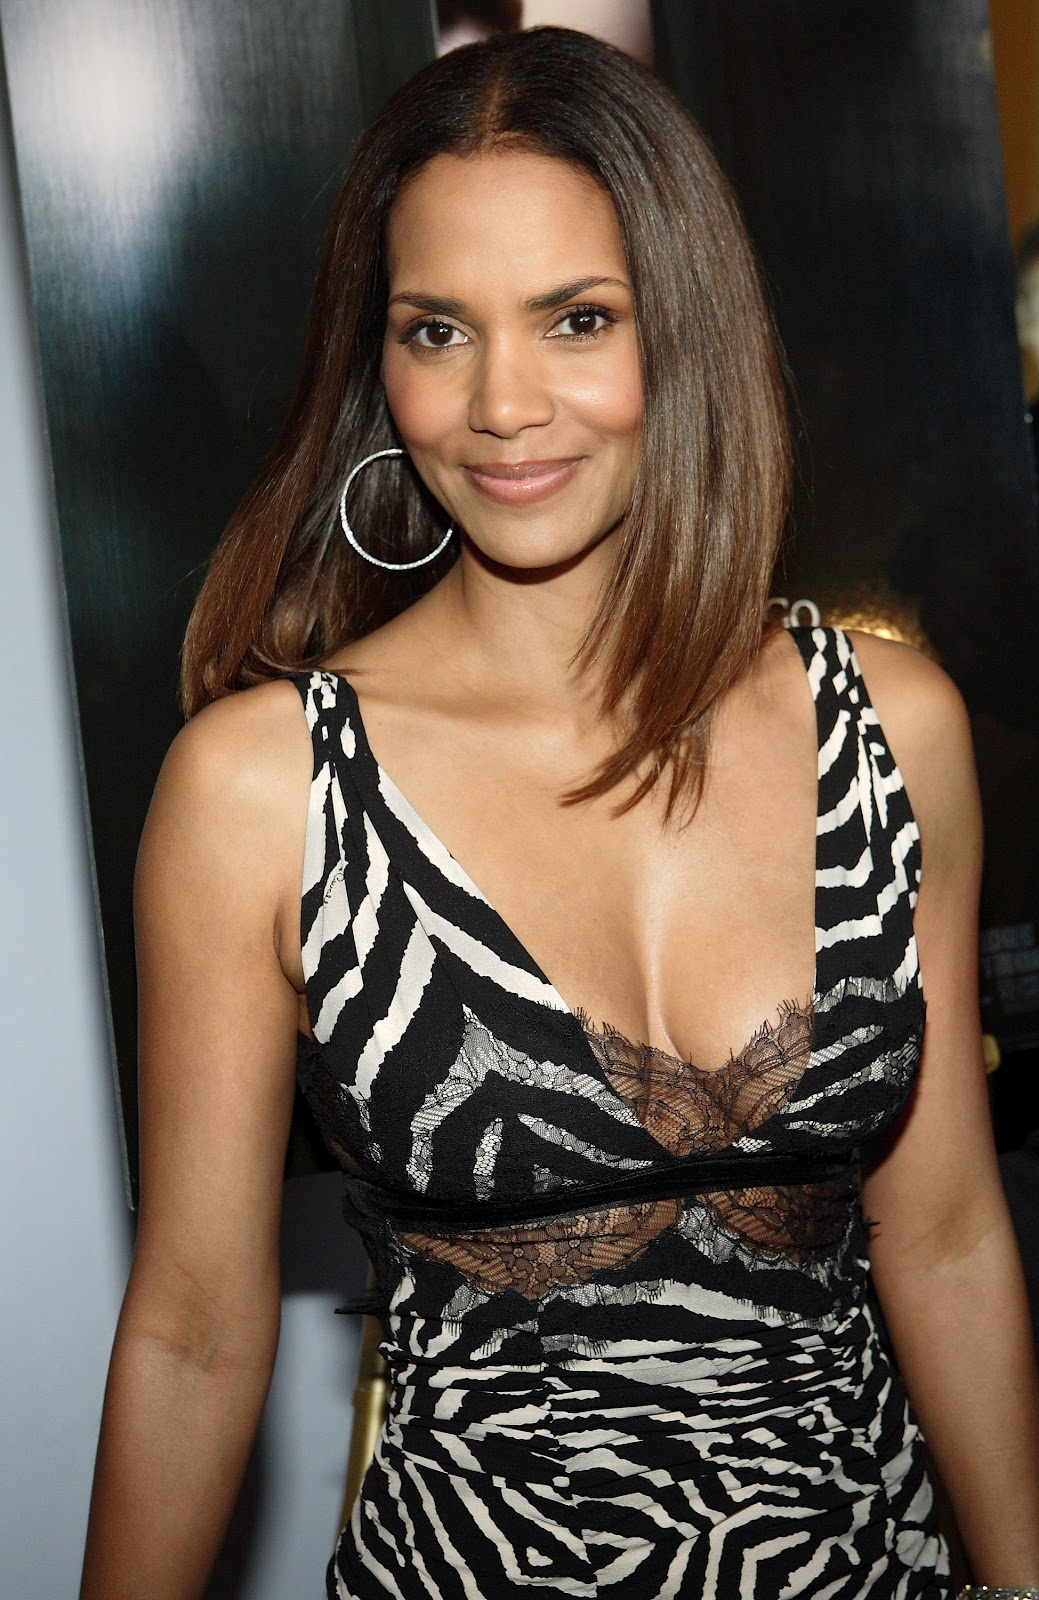 Halle Berry Hd Wallpapers , Halle Berry Hd Wallpapers New -4996